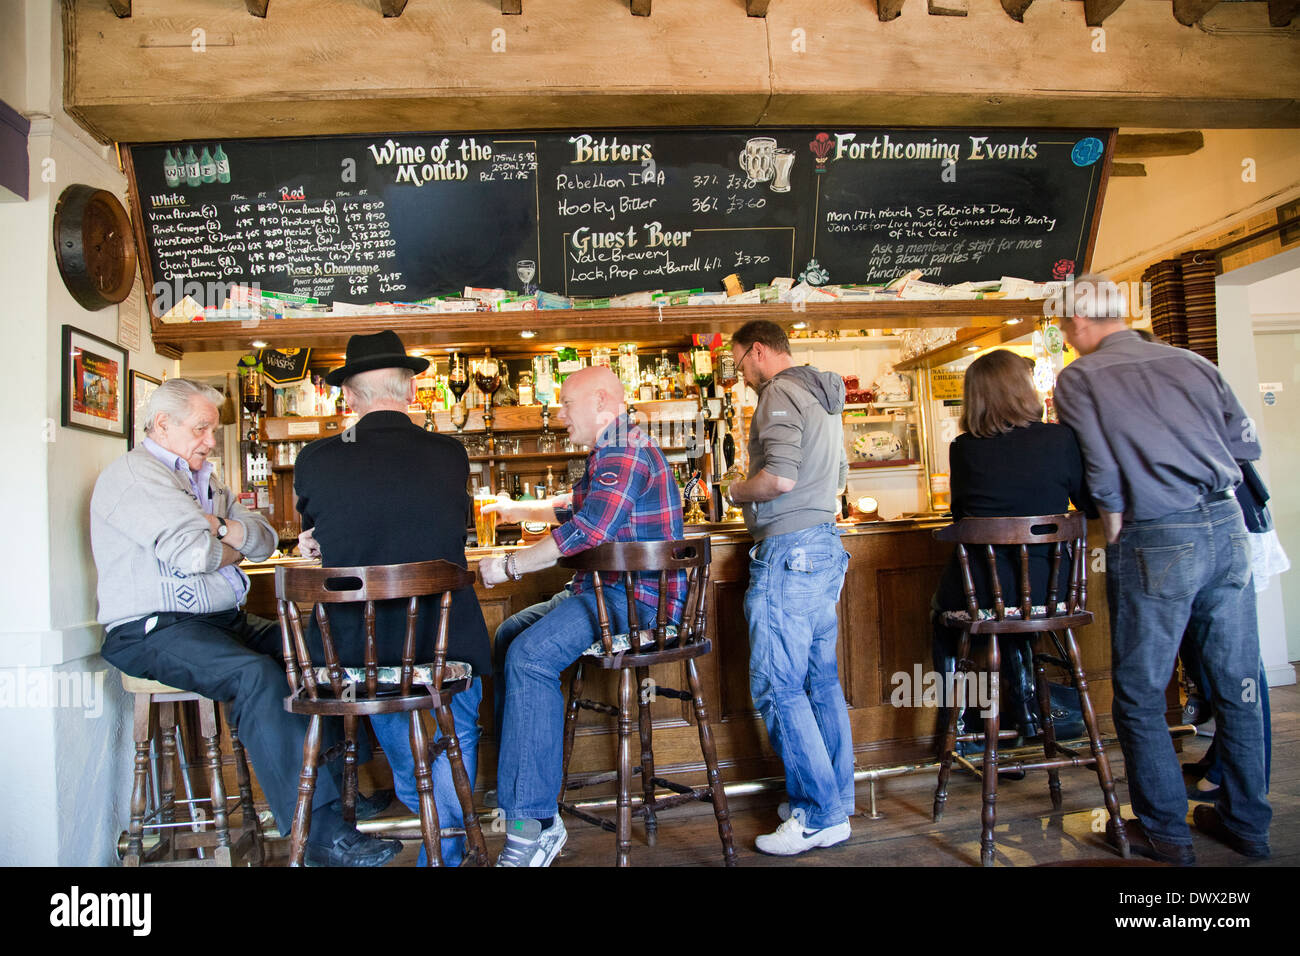 Locals Drinking at The Frog Free House and Restaurant Bar in Skirmett - Buckinghamshire - UK - Stock Image